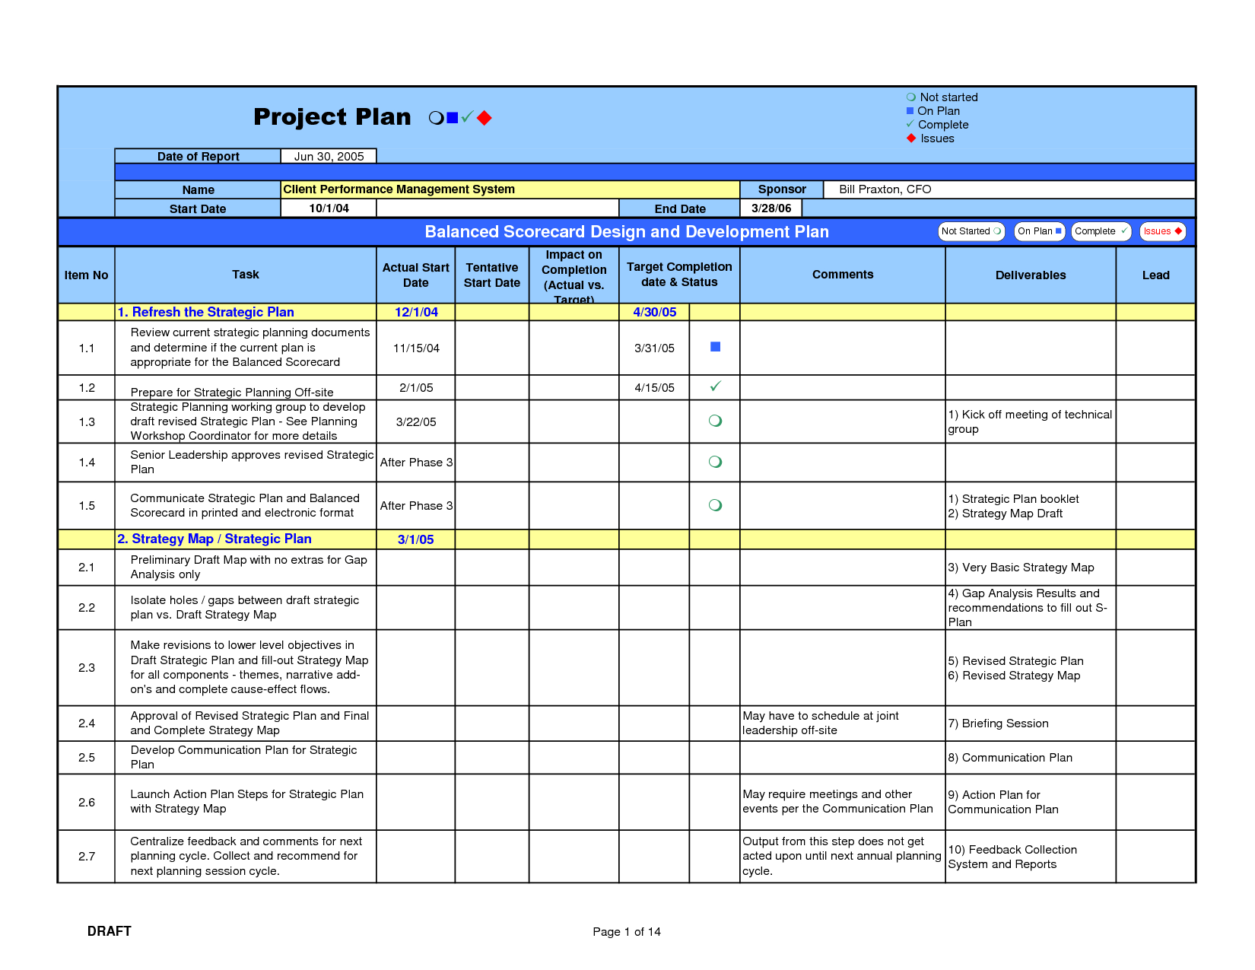 Project Management Plan Pmi Template Free Change Excel Construction In Project Management Templates In Word